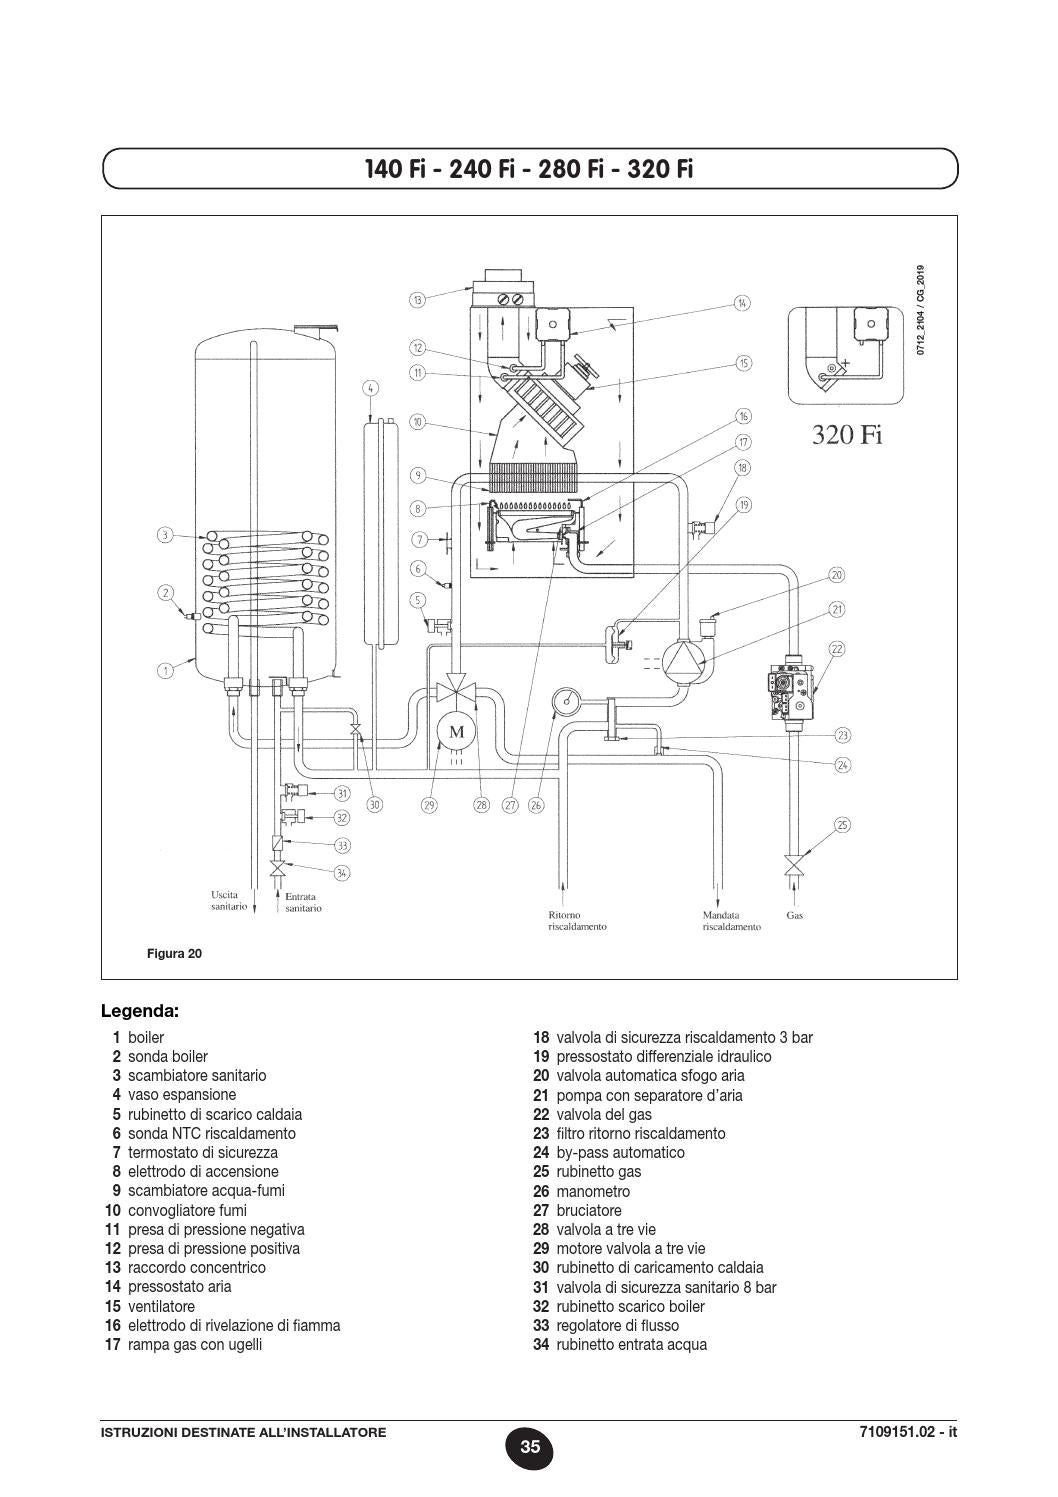 Manuale nuvola 3 comfort baxi by baxi spa issuu for Manuale termostato luna in 20 fi